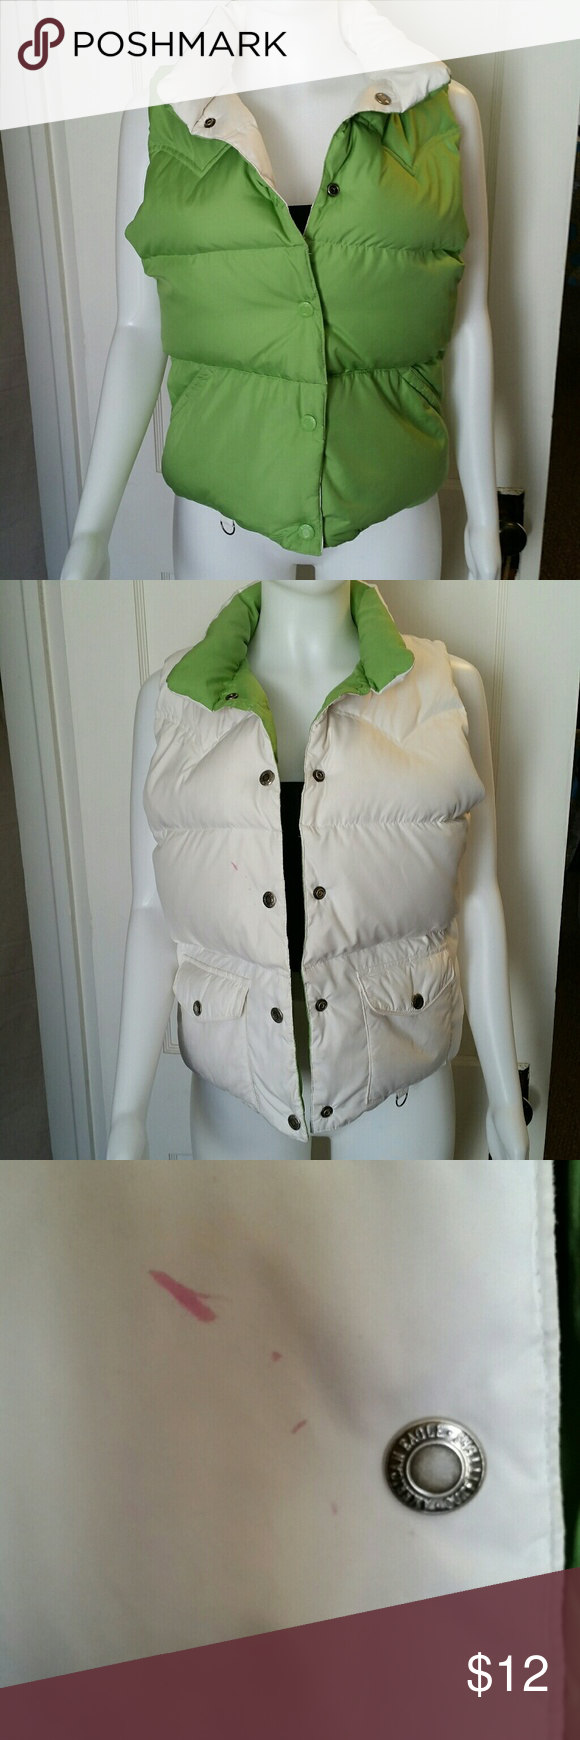 American Eagle Reversible Vest Excellent condition apart from a small pink spot on the white side. You can still wear it green side out, great vest overall but priced accordingly. American Eagle Outfitters Jackets & Coats Vests